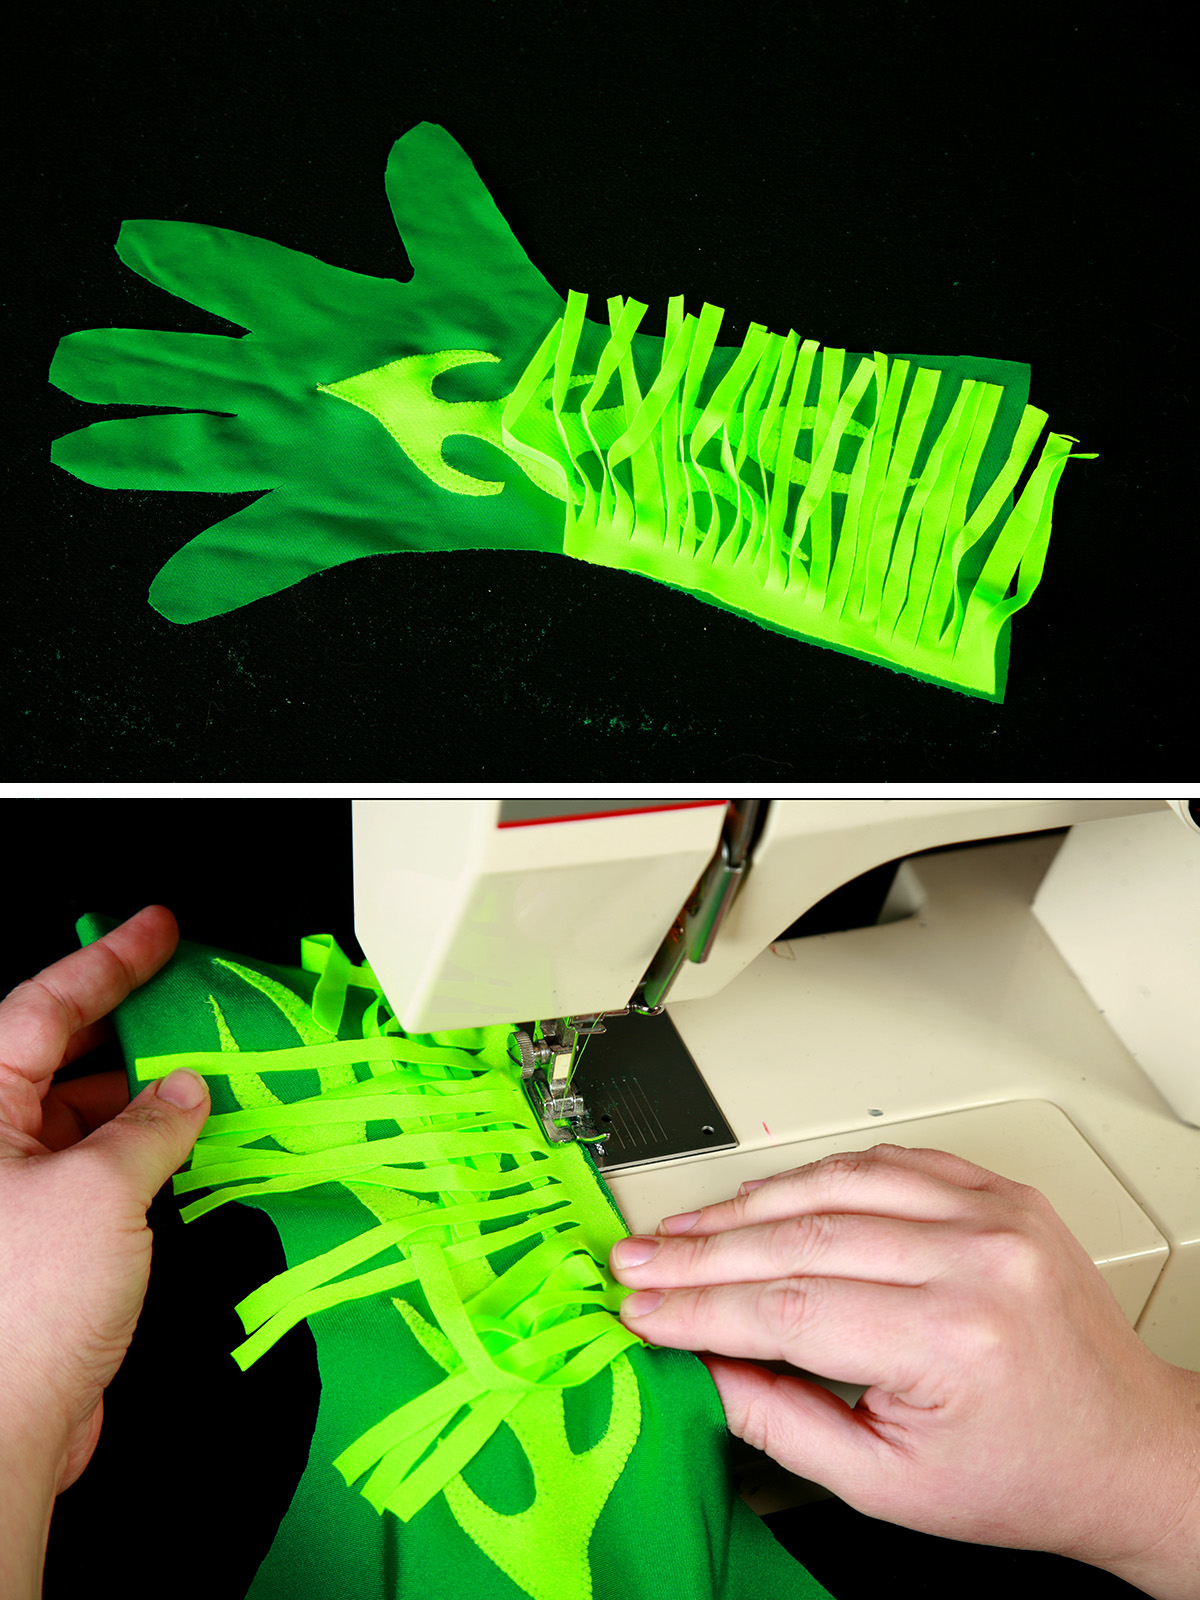 A two part compilation image showing neon green spandex frige being sewn into a darker green glove.